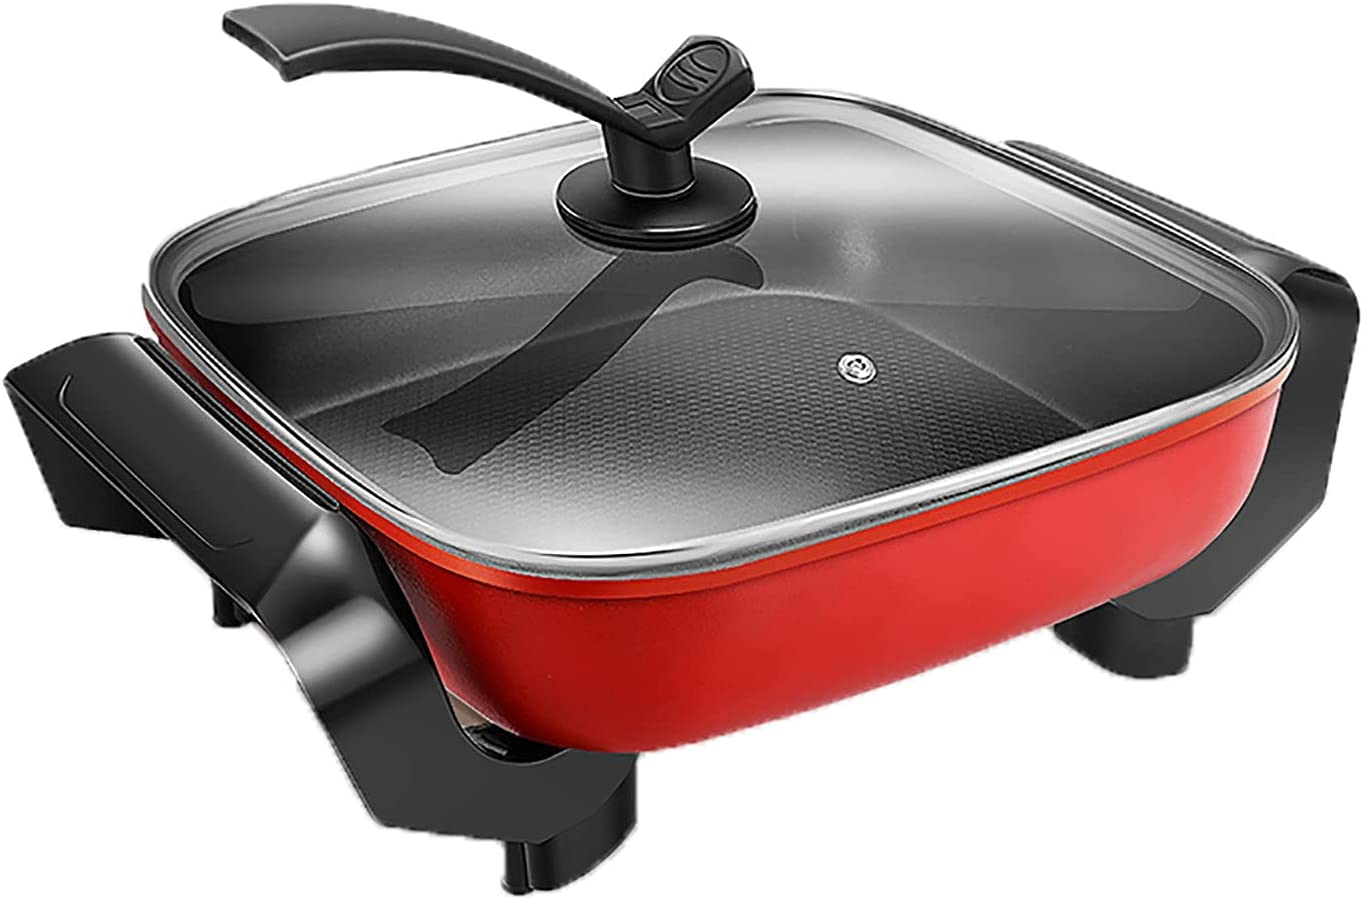 Multifunctional Electric Hot Pot with Pan Frying Non-s half Max 70% OFF